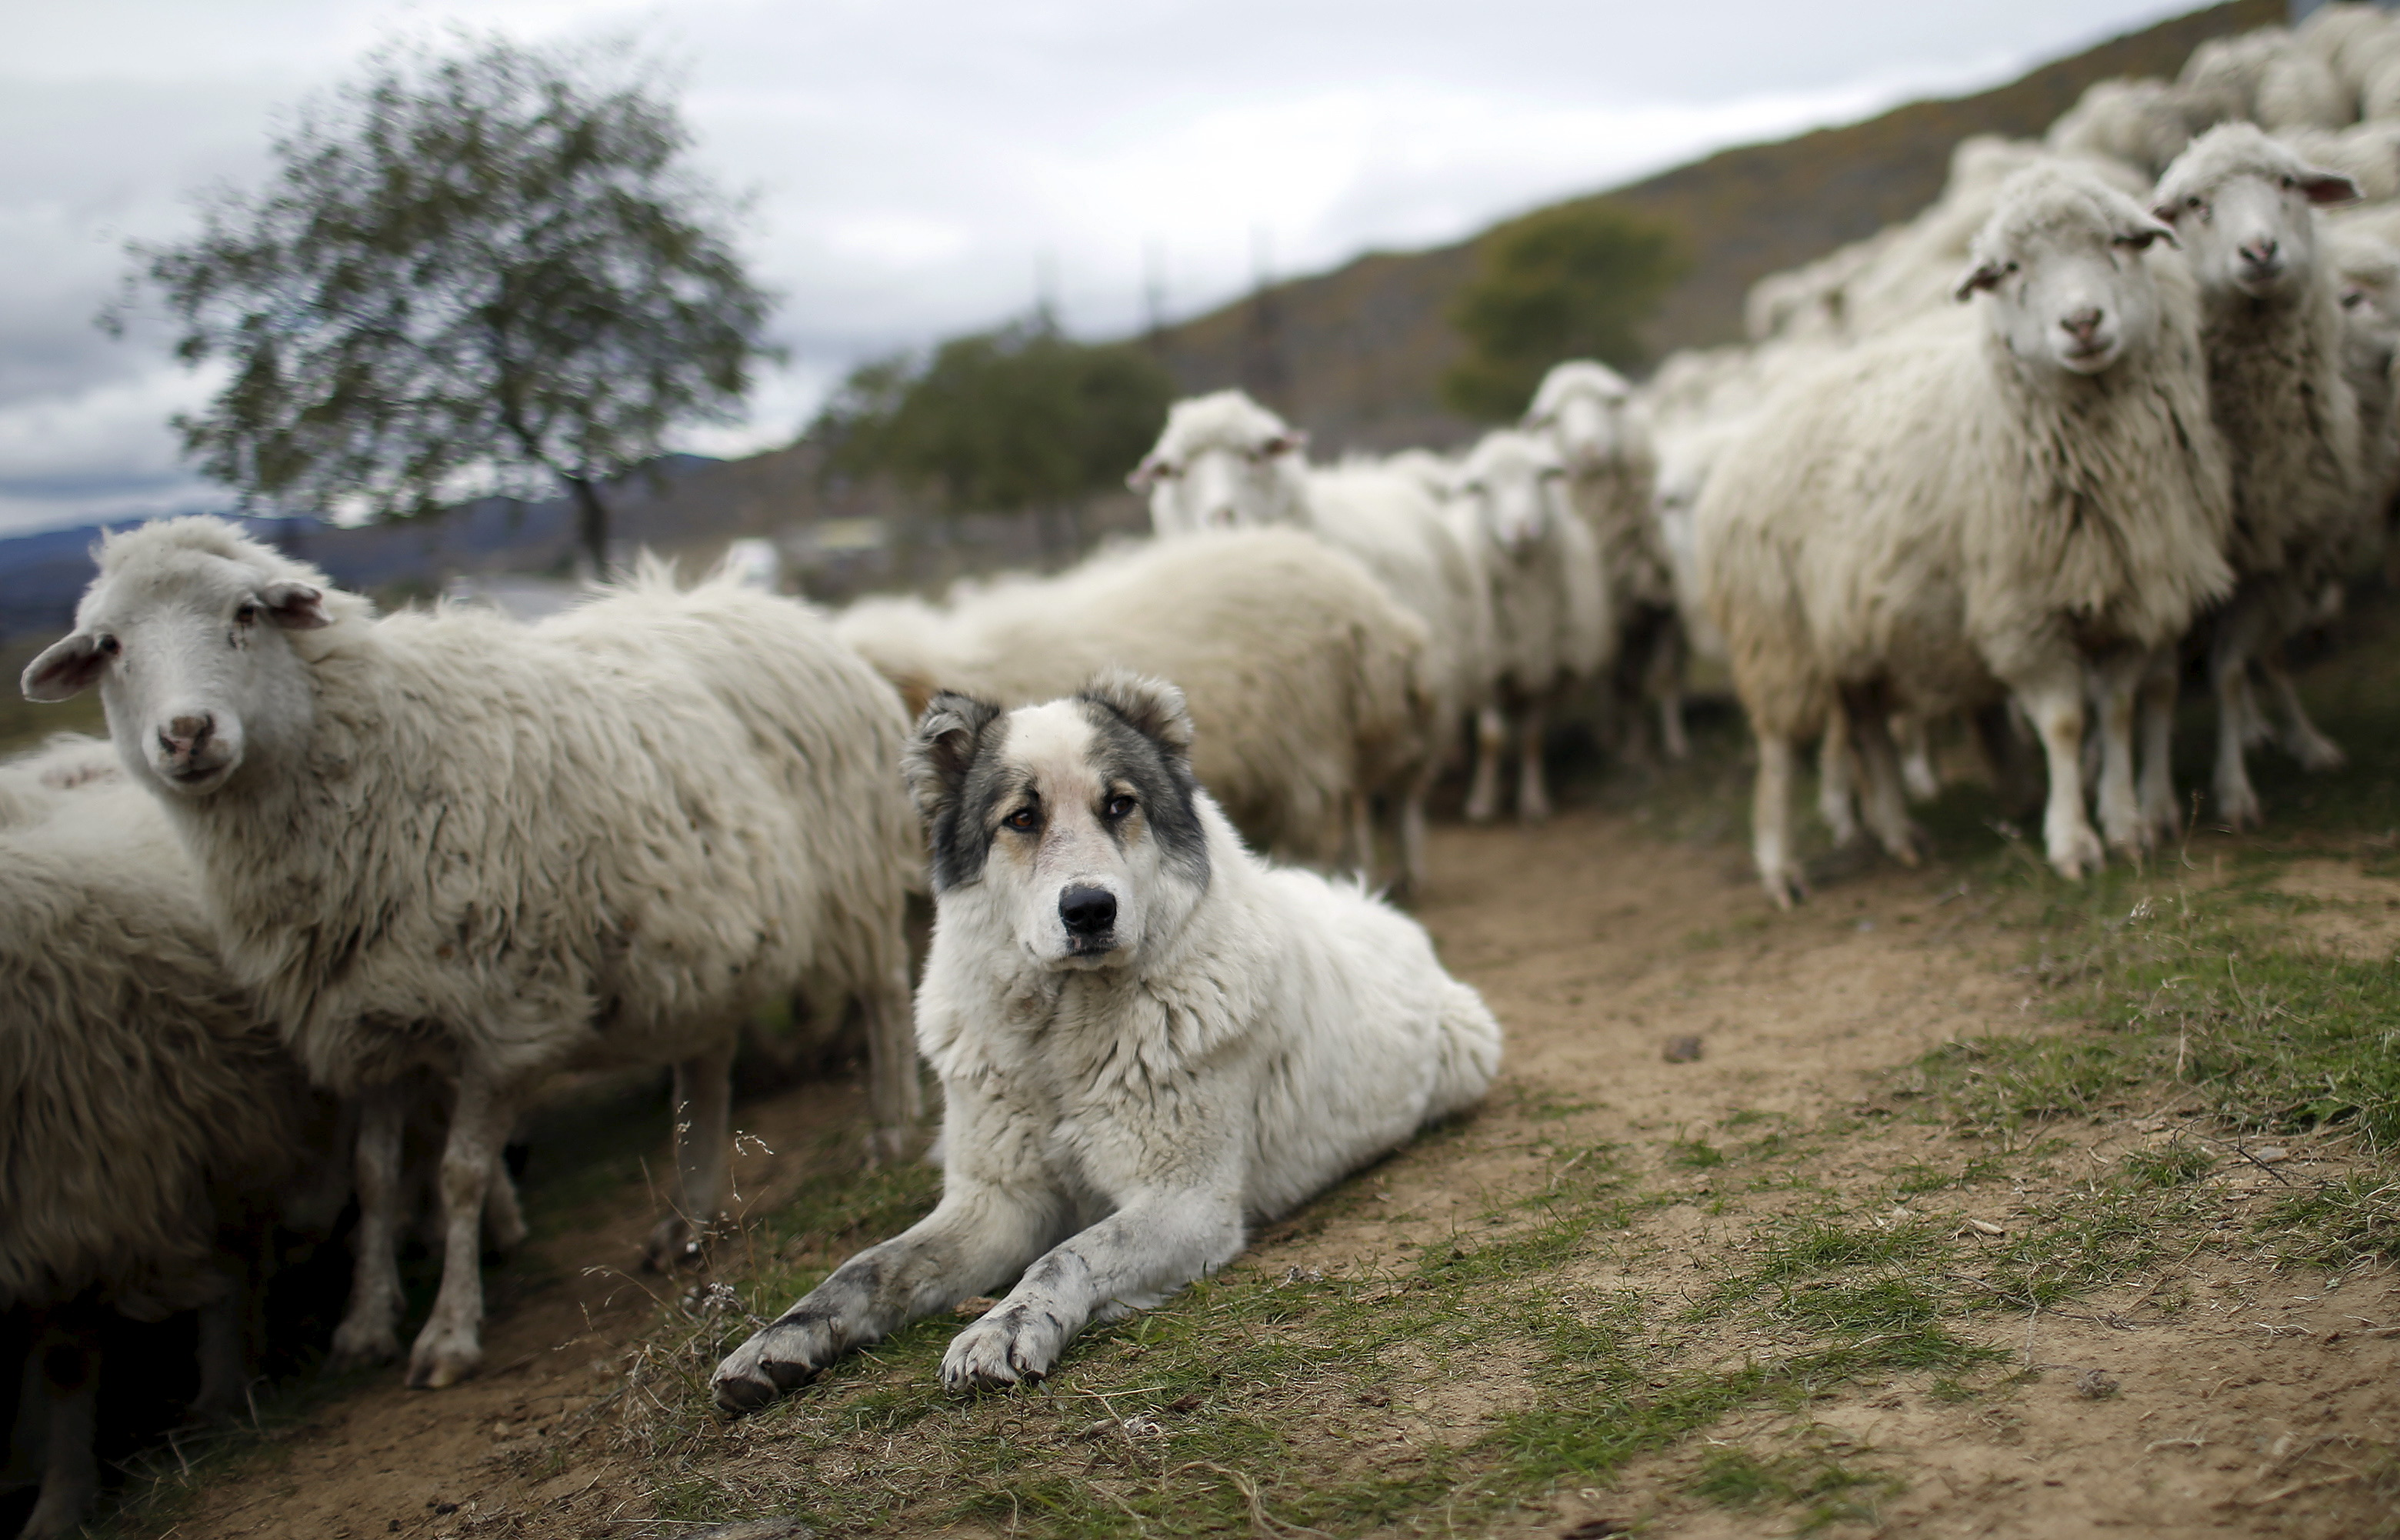 A shepherd dog tending a herd of sheep outside Tbilisi, Georgia.